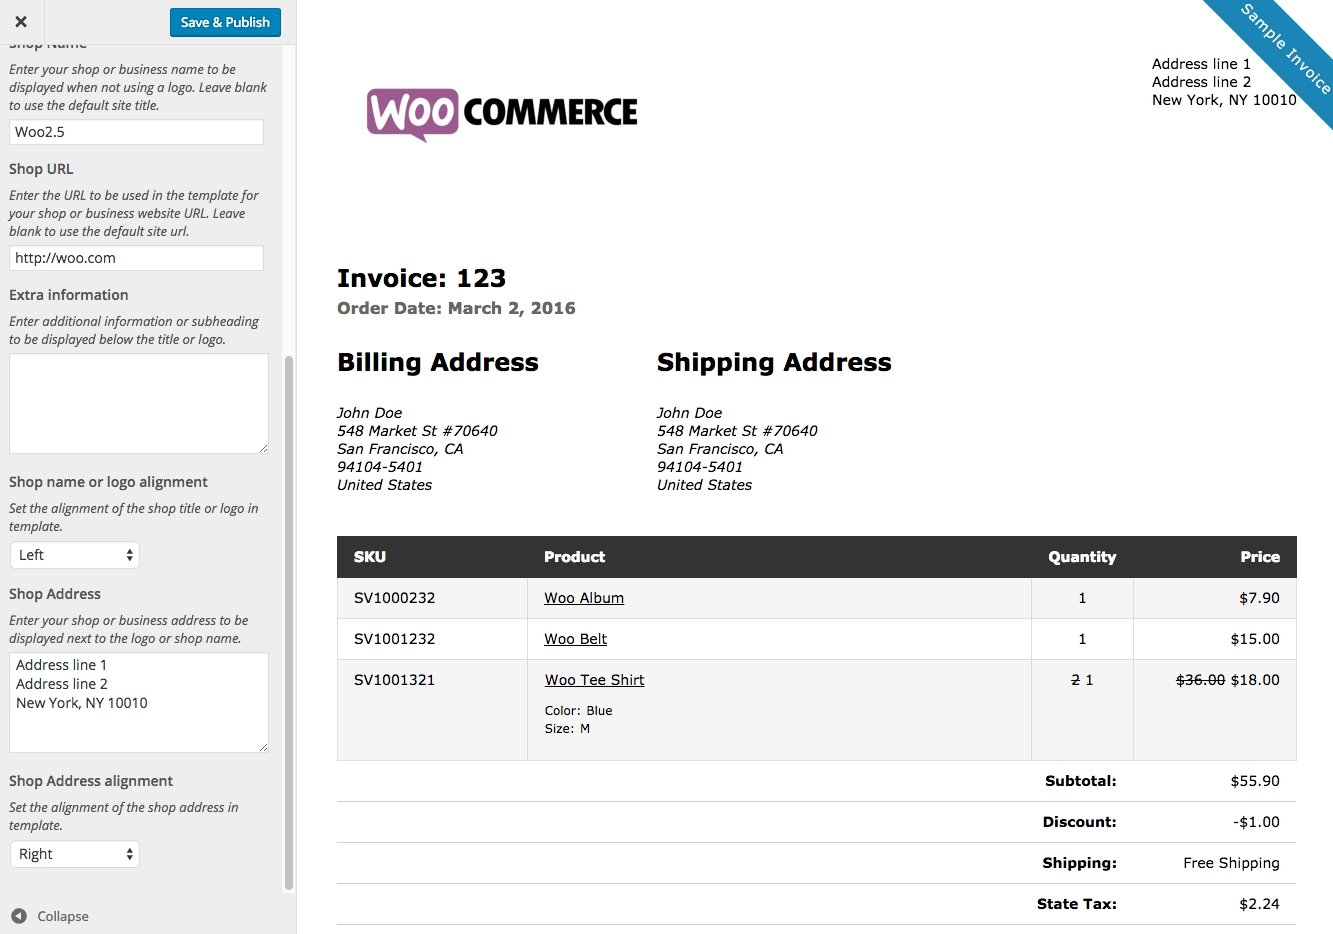 invoice and packing list print invoices amp packing lists woocommerce 1333 X 934